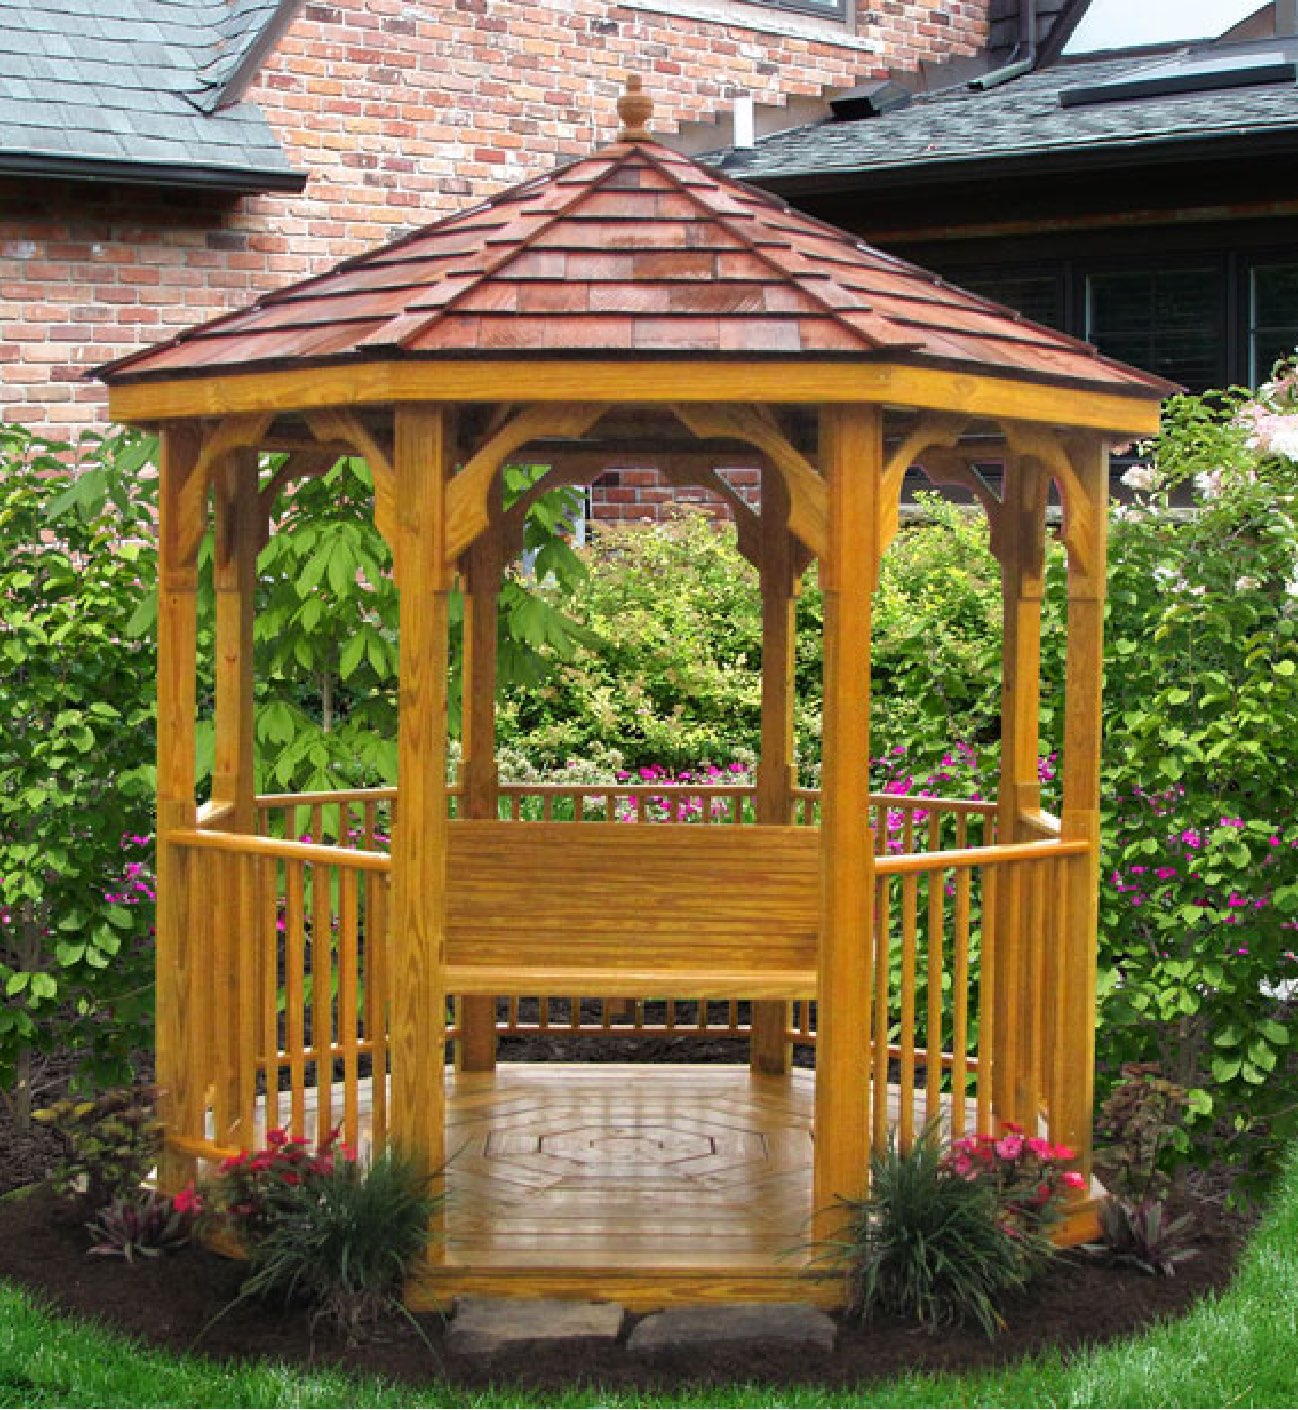 8' x 8' Value Wood Gazebo